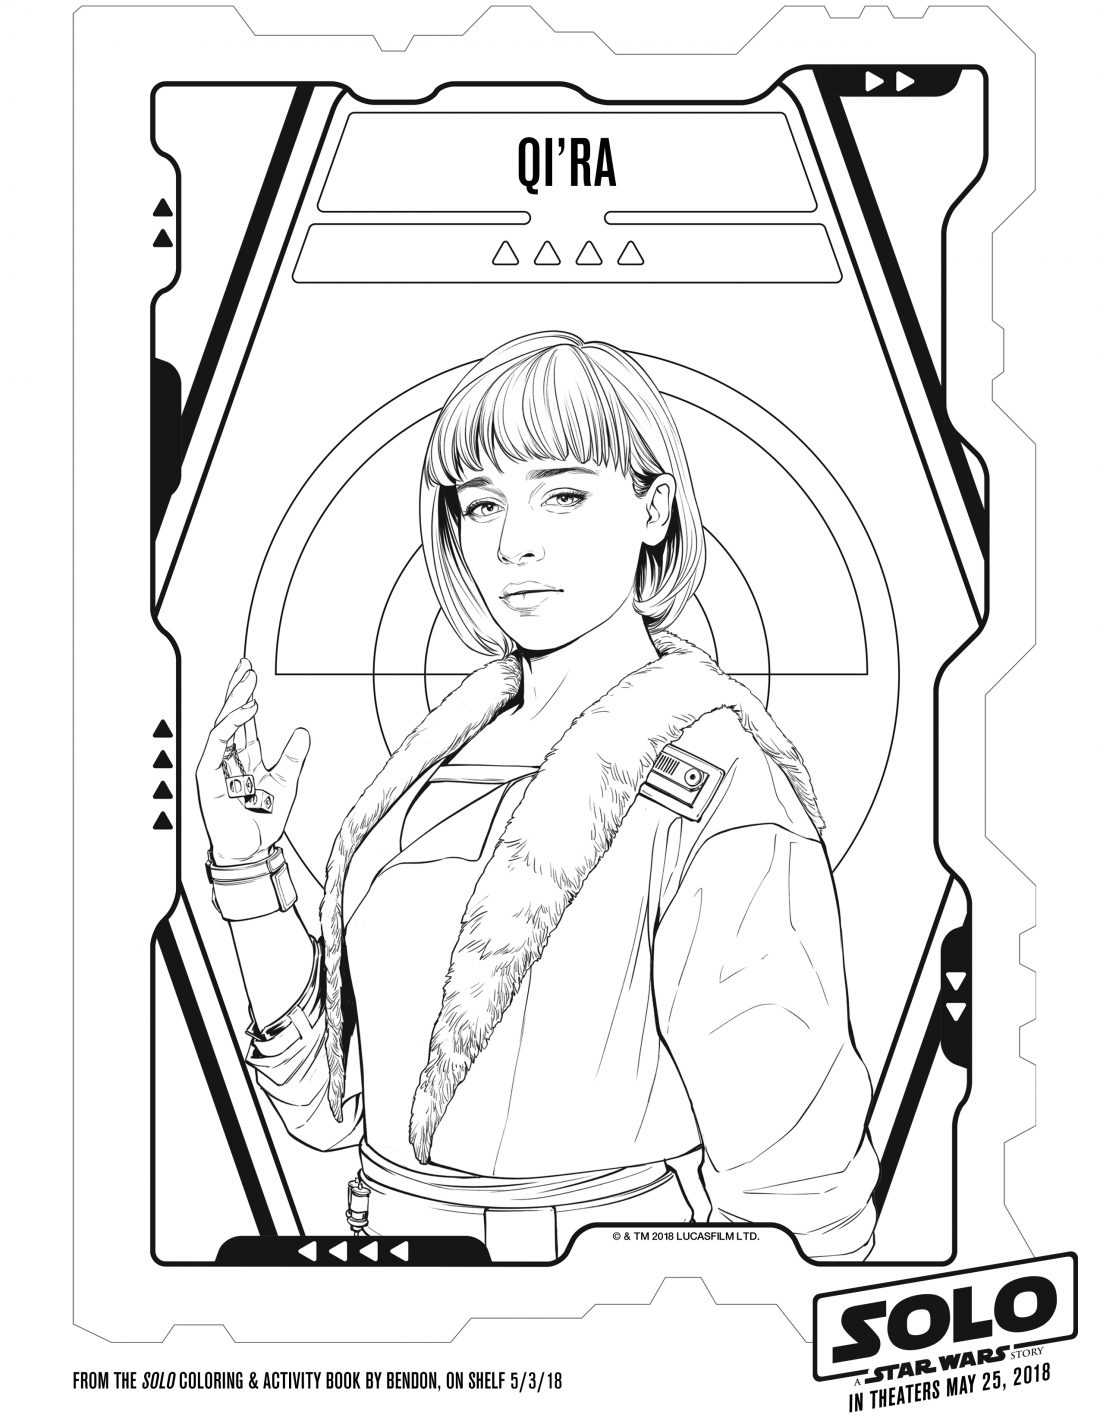 star wars coloring pages to print star wars to color for children star wars kids coloring wars coloring star to print pages